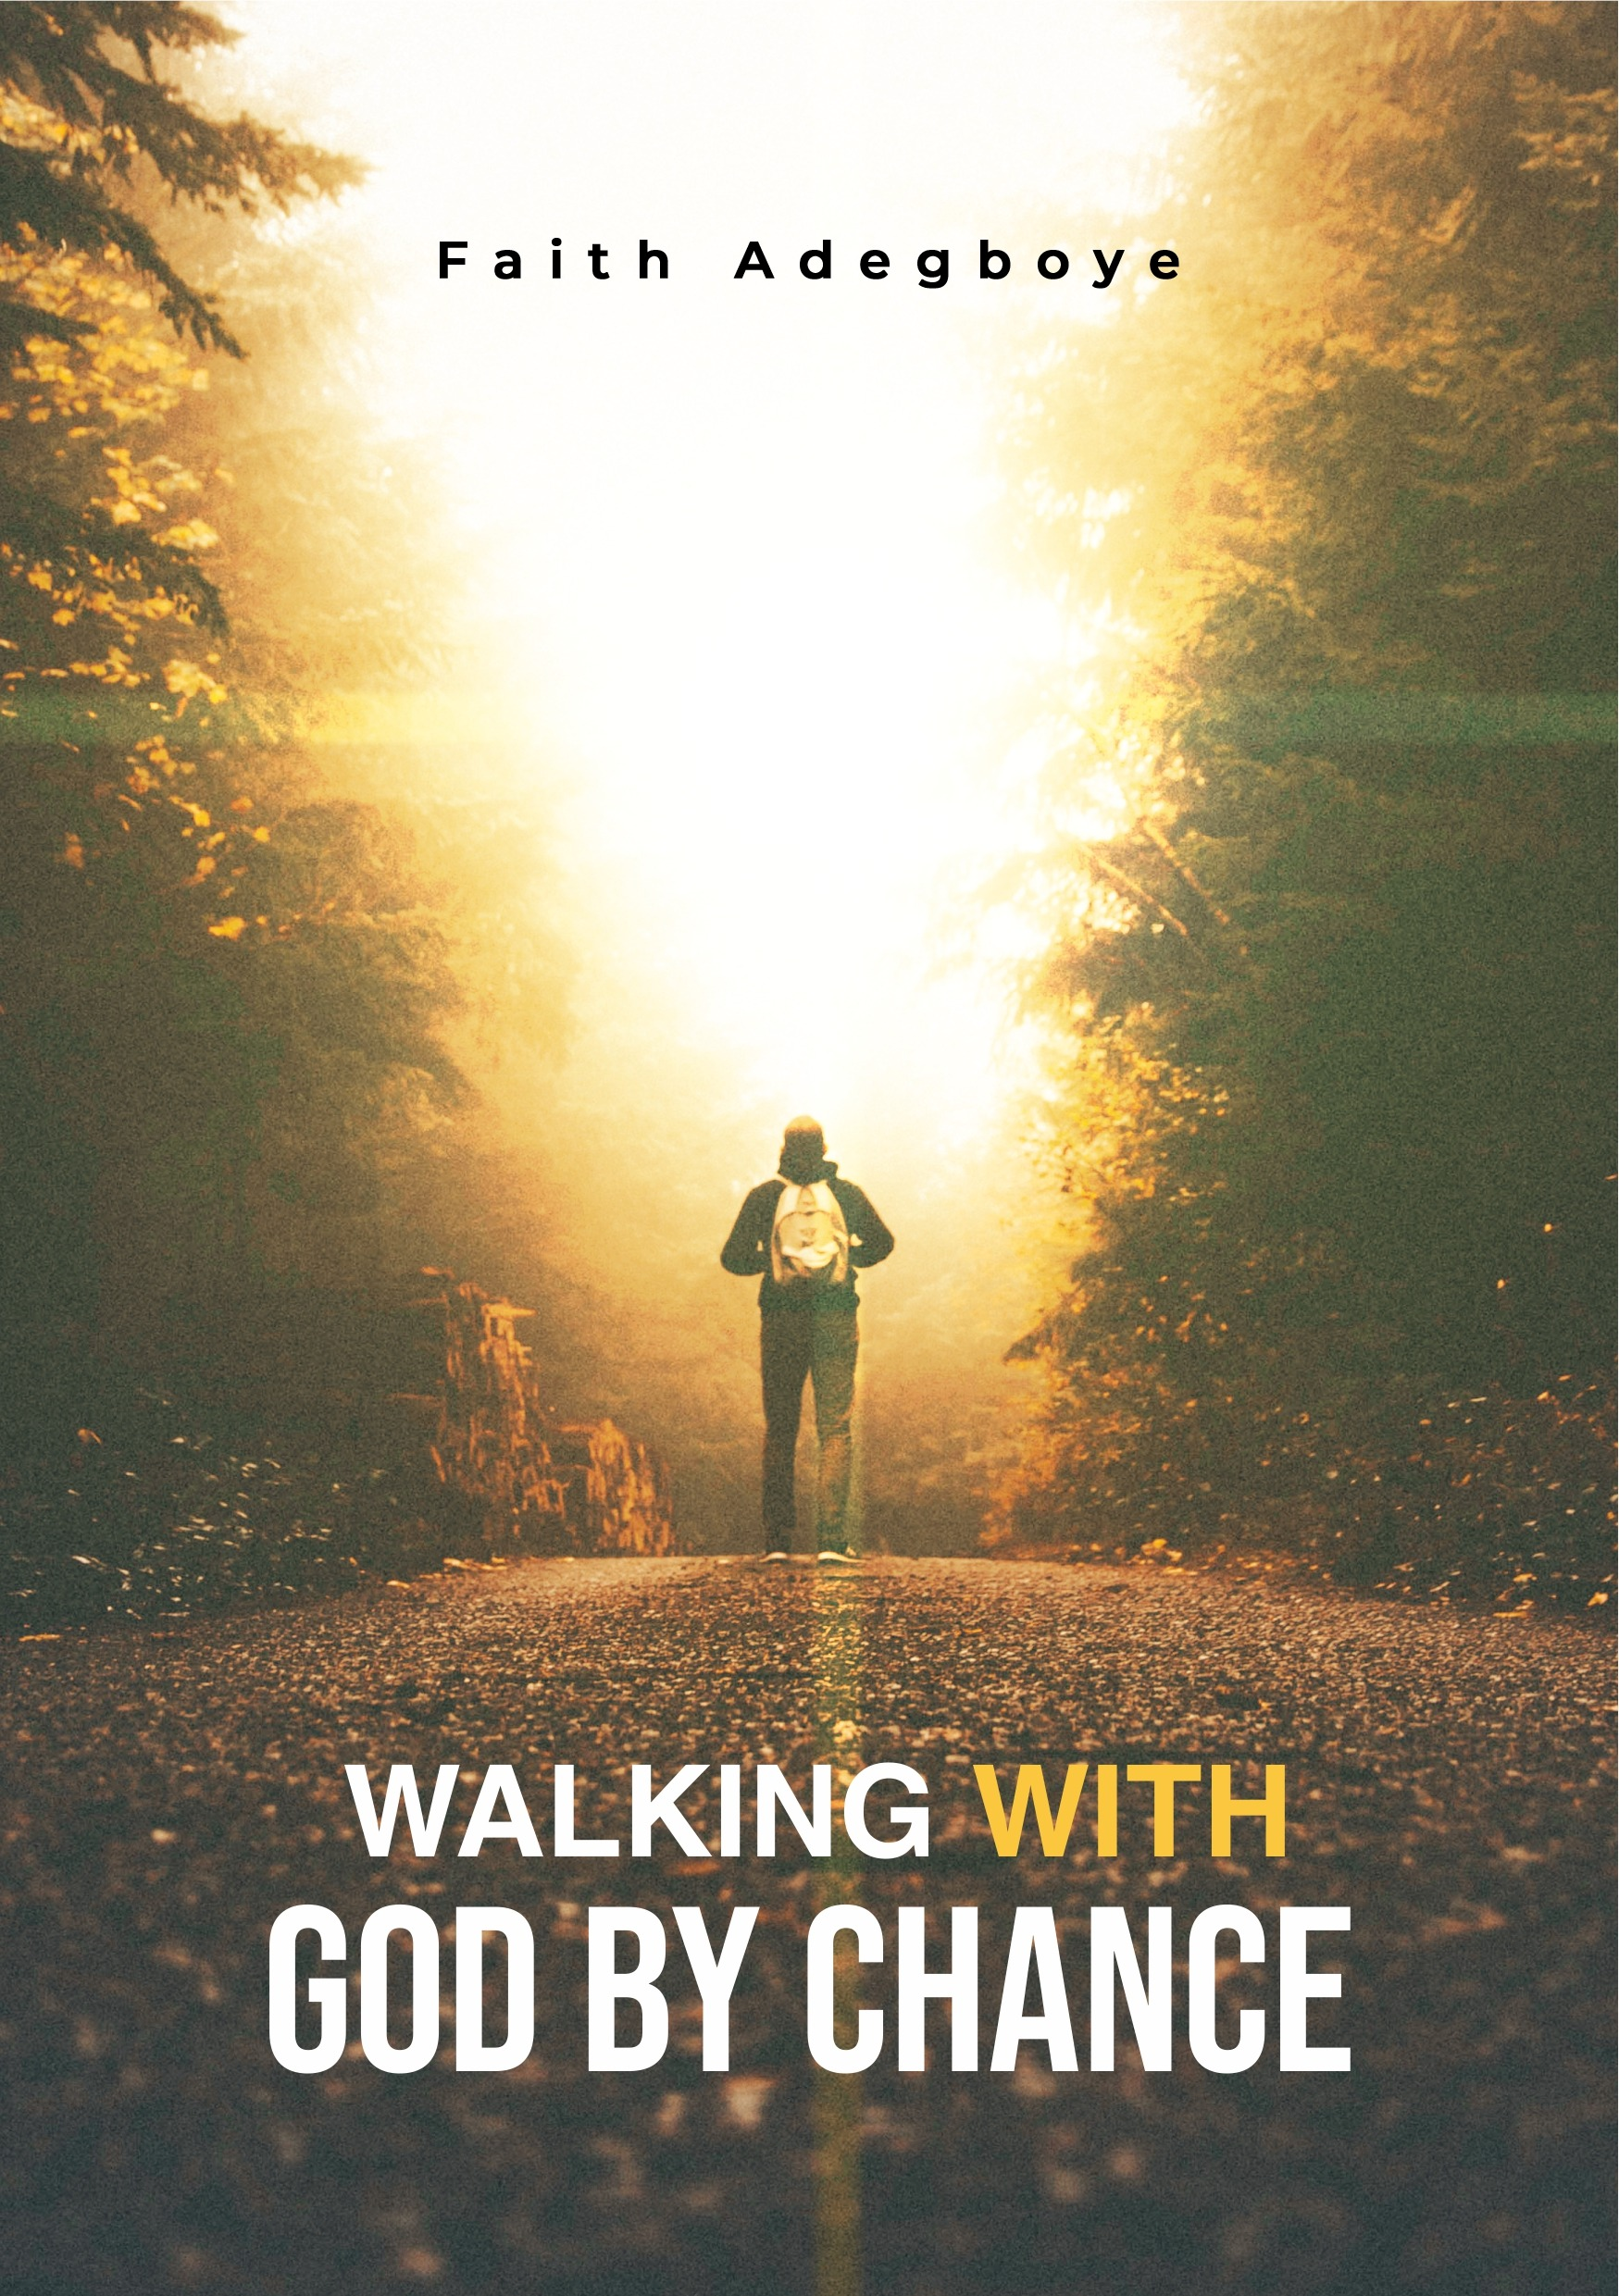 Walking with God by chance